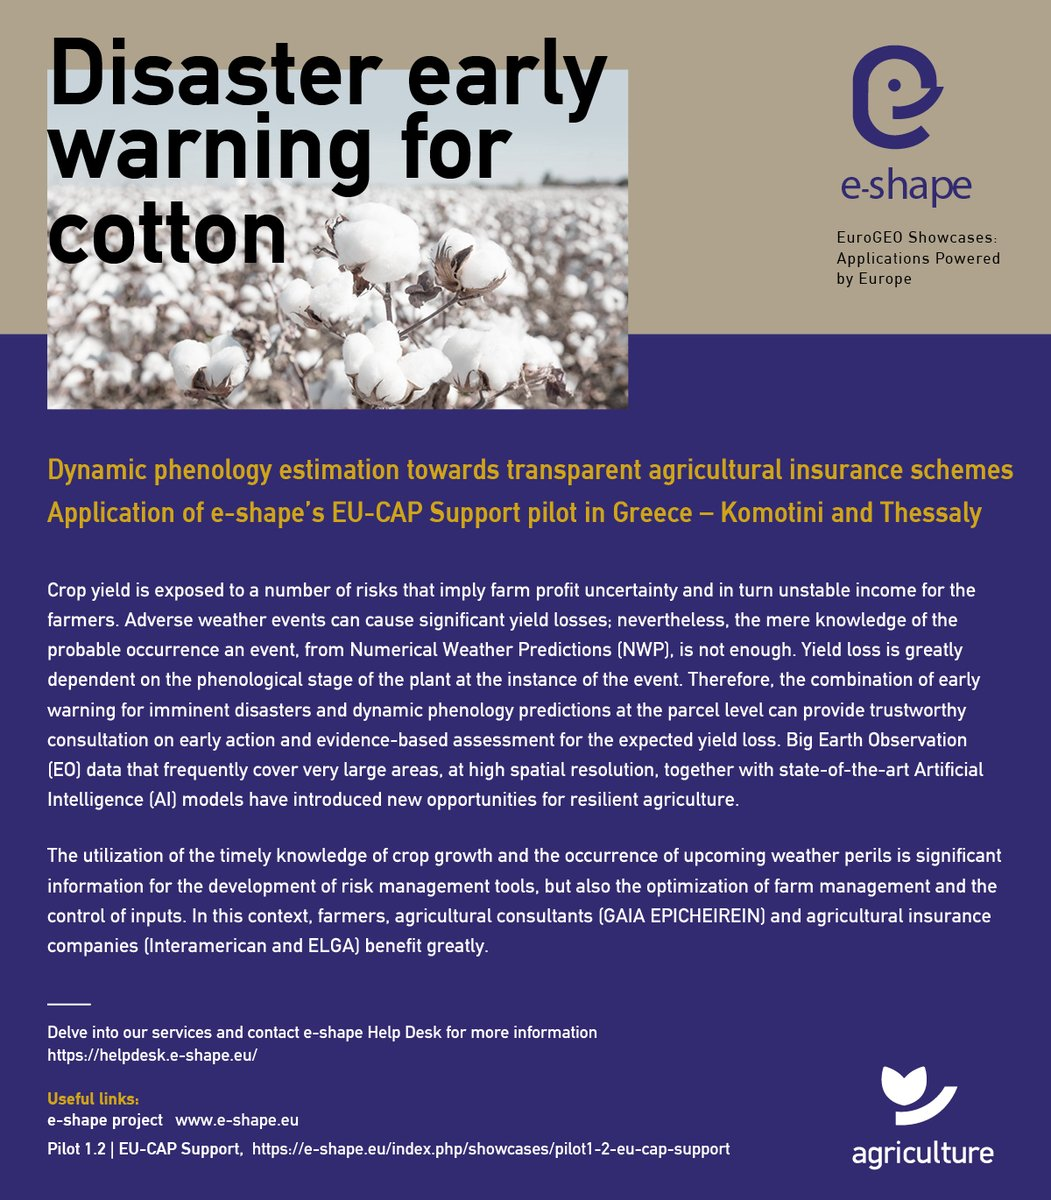 Read our latest success story about Disaster early warning for cotton. Big EO data that frequently cover very large areas together with state-of-the-art AI models have introduced new opportunities for resilient agriculture e-shape.eu/index.php/show…